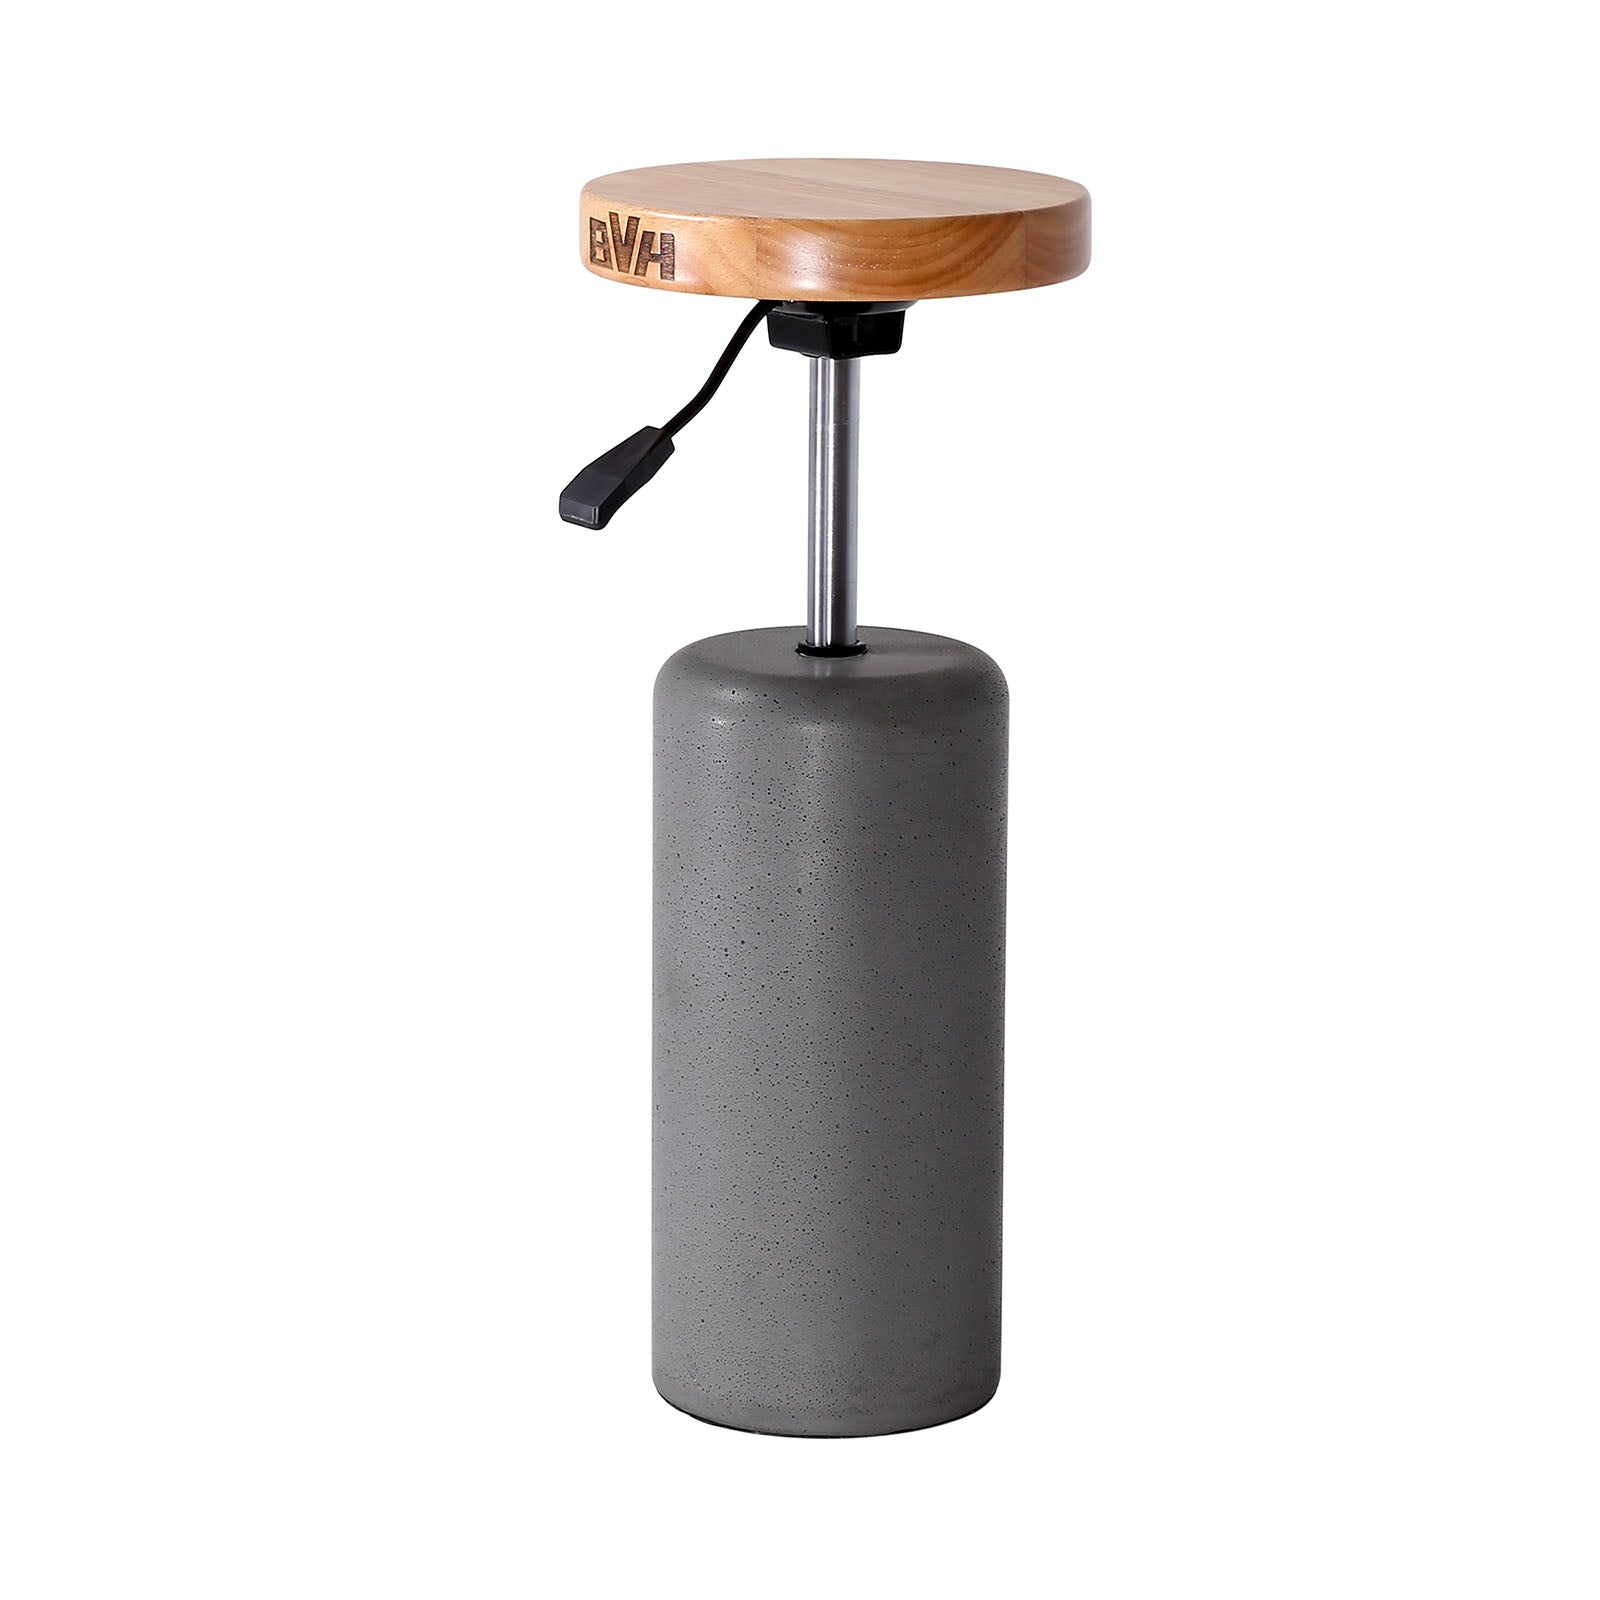 Concrete Adjustable height bar stool   BC8521-Greywithholes -  كرسي بار بارتفاع قابل للتعديل من الخرسانة - Shop Online Furniture and Home Decor Store in Dubai, UAE at ebarza